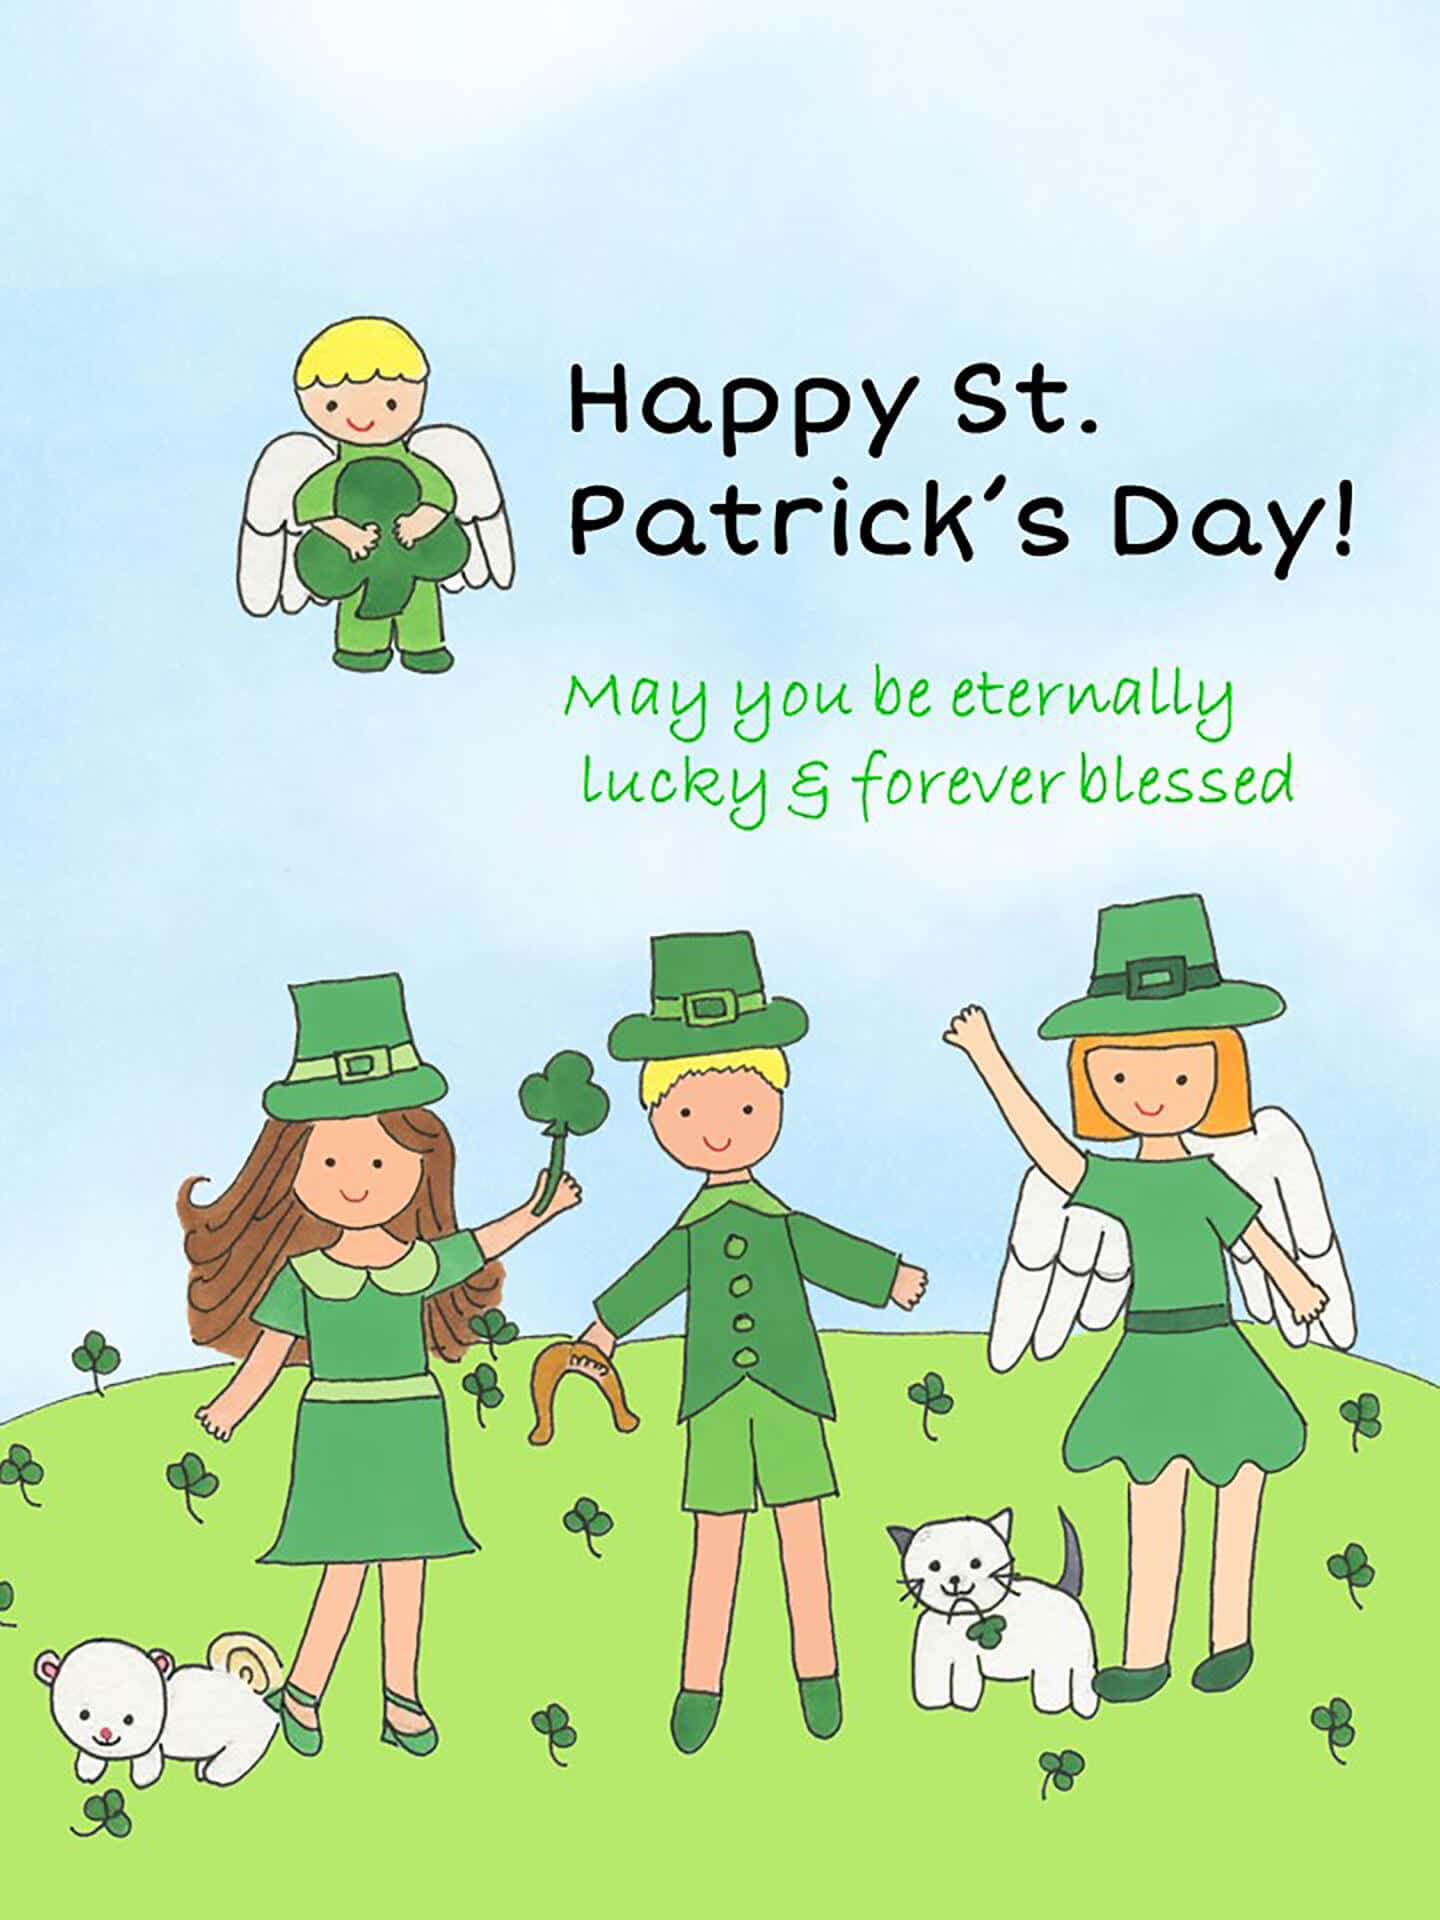 St. Patrick's Day Luck & Blessings eCard